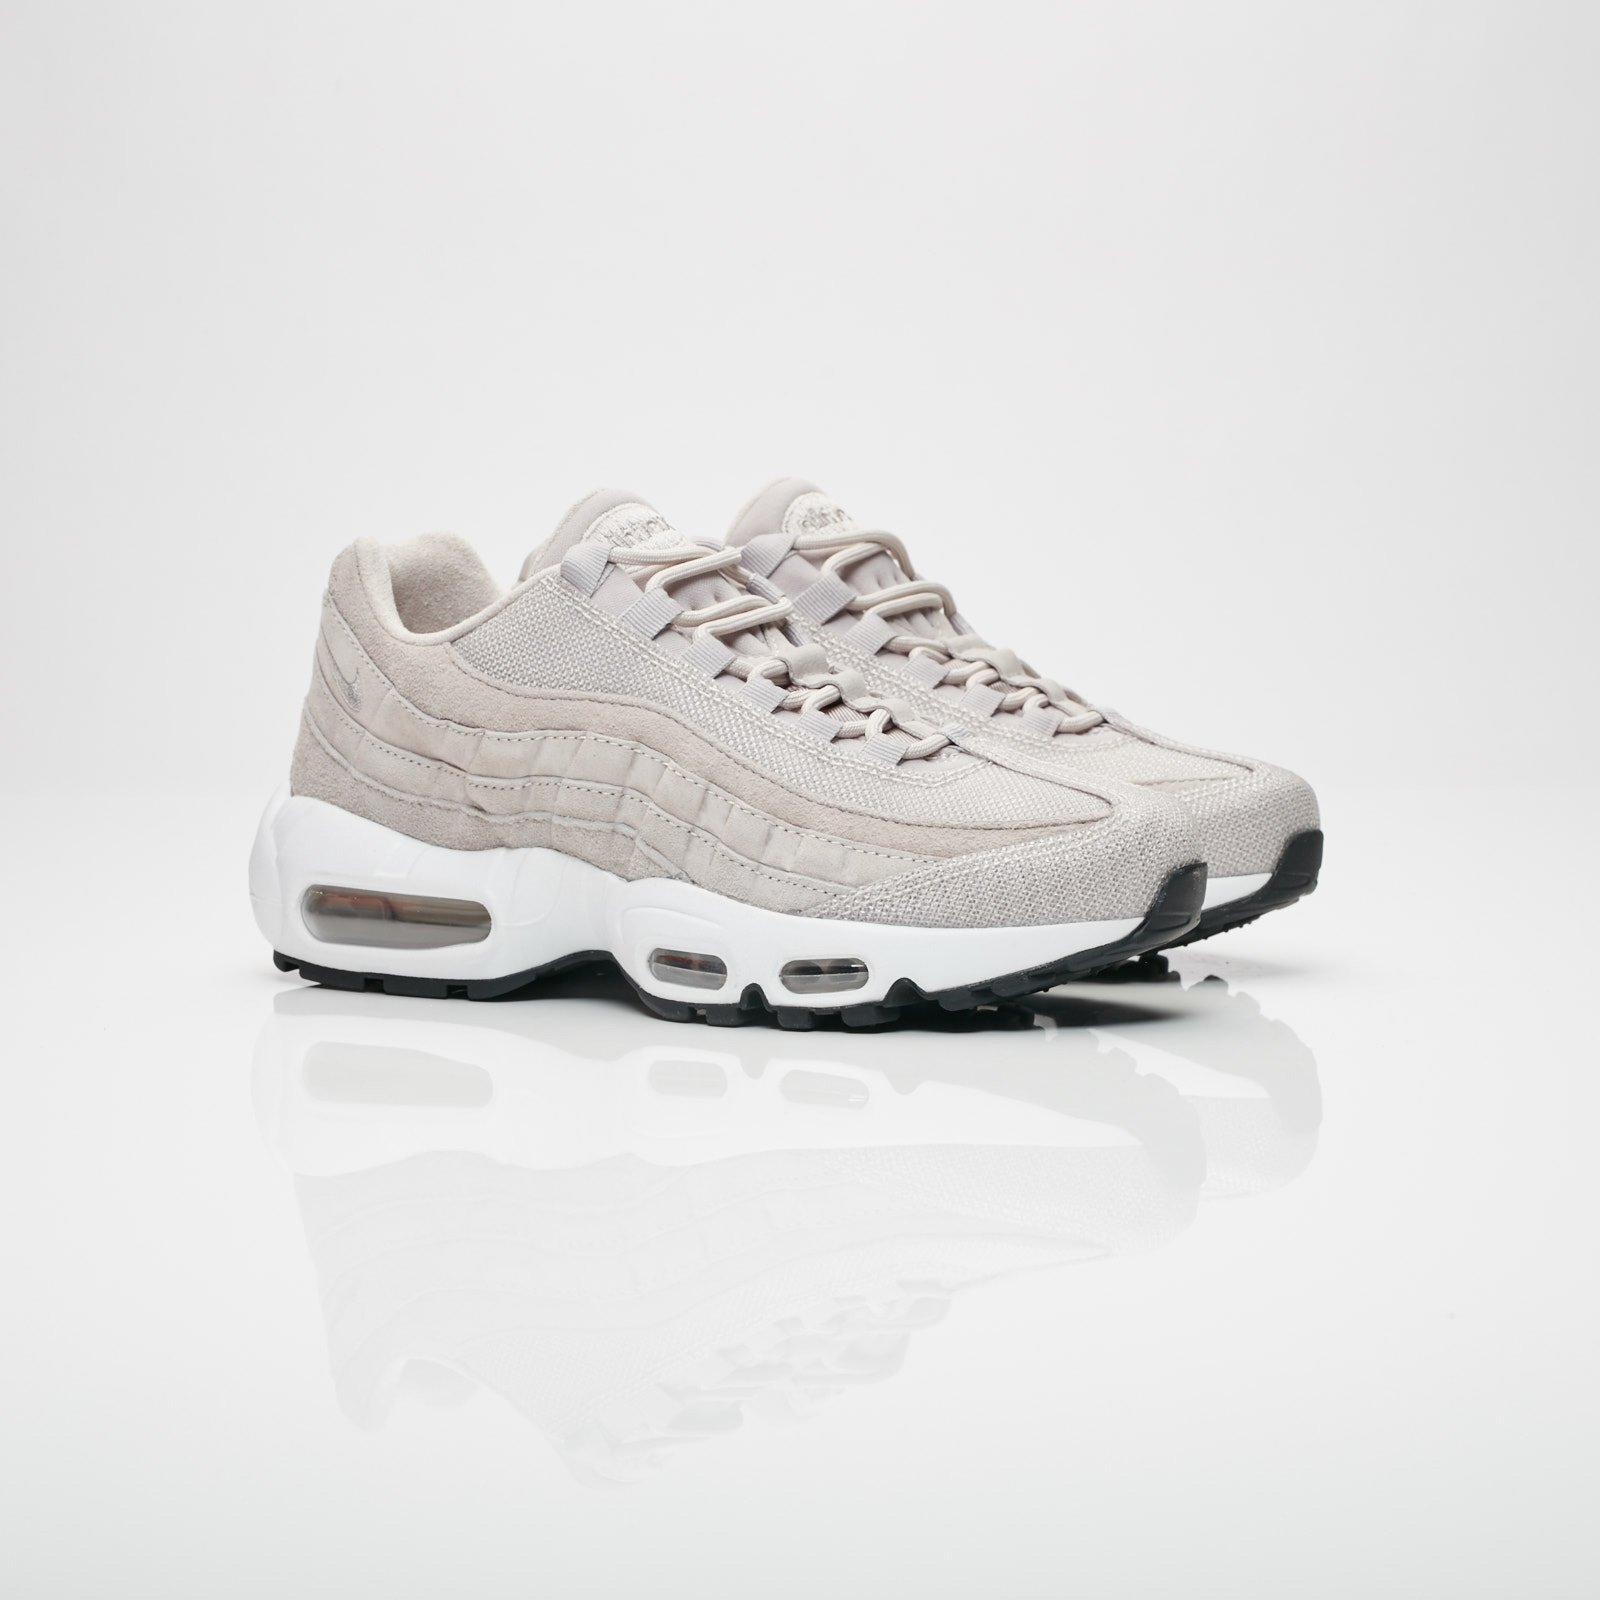 Matemático progresivo Cumplimiento a  Nike Wmns Air Max 95 PRM - 807443-200 - Sneakersnstuff I Sneakers &  Streetwear online seit 1999